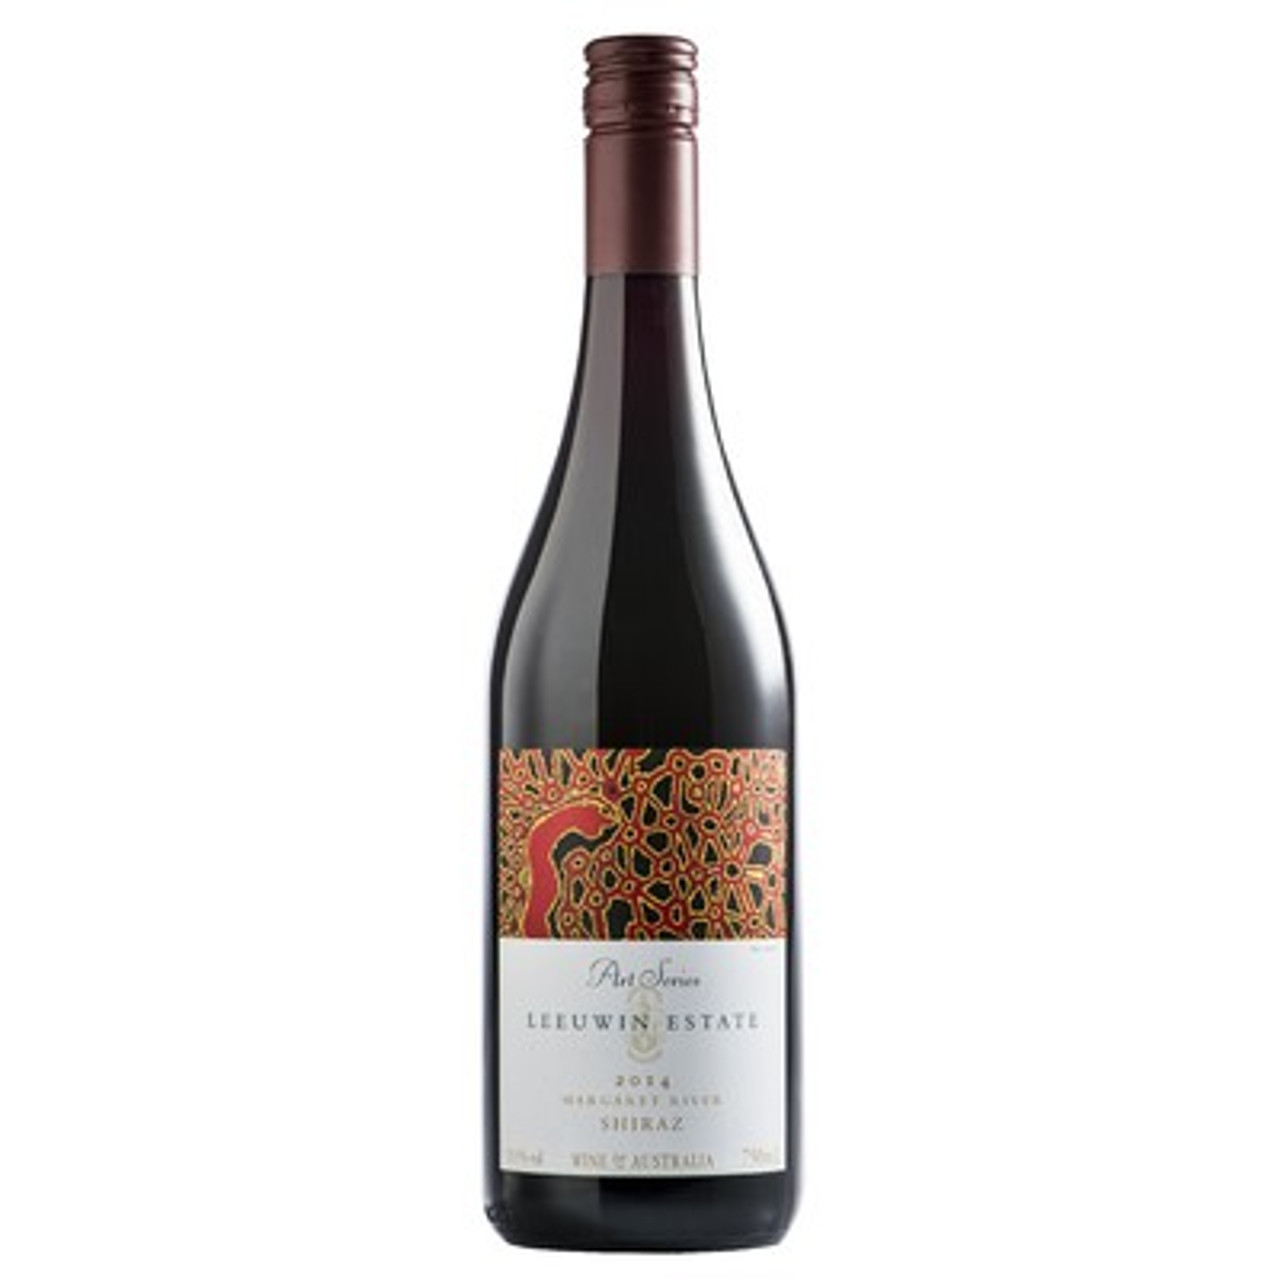 Leeuwin Estate, Art Series Shiraz Margaret River 2014